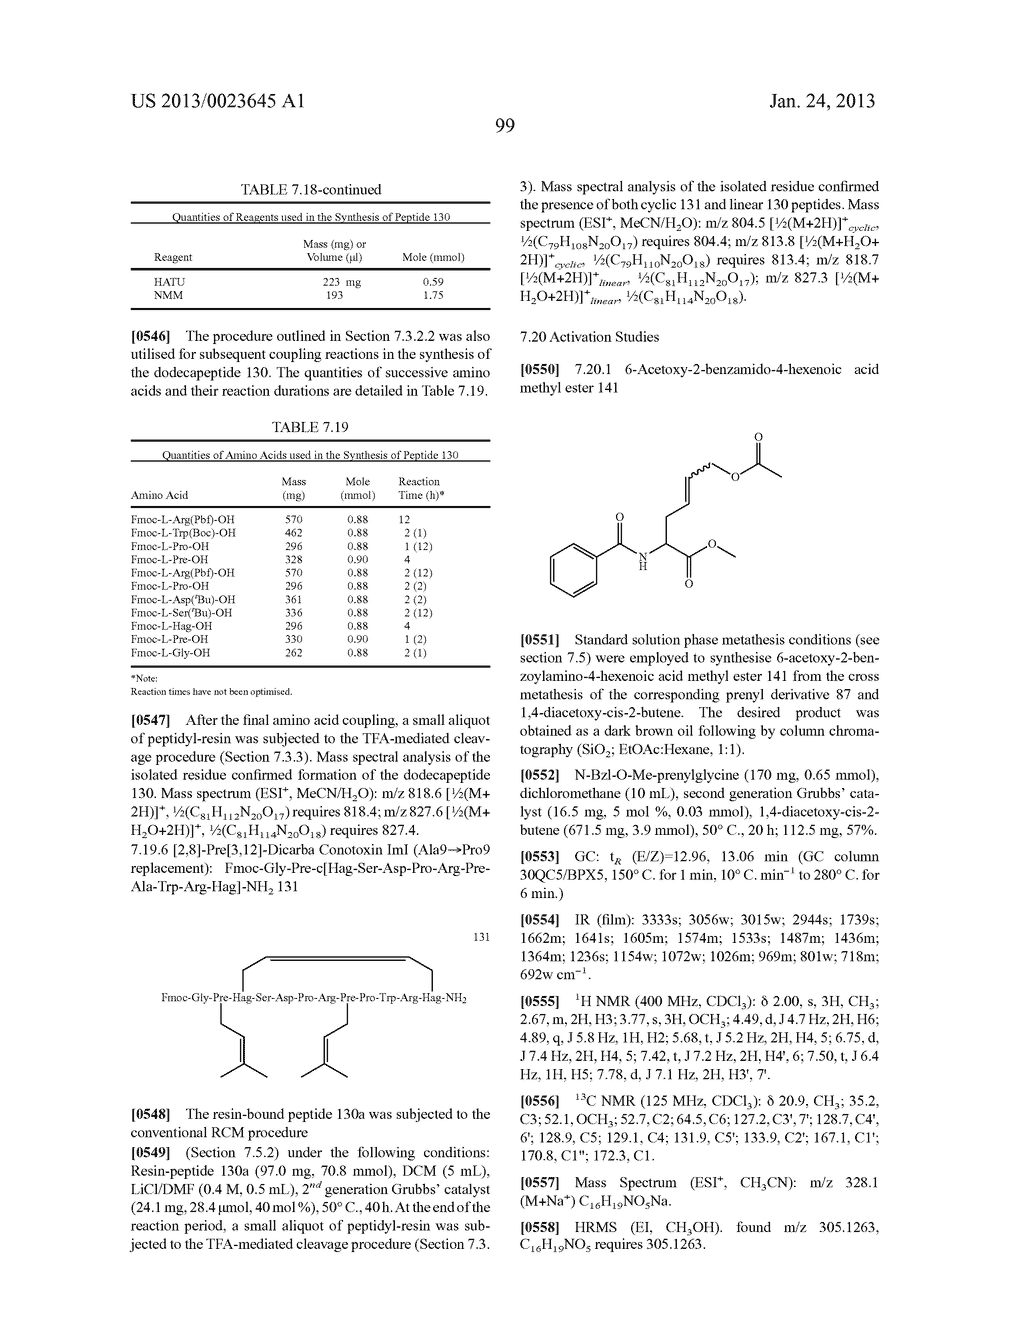 METHODS FOR THE SYNTHESIS OF DICARBA BRIDGES IN ORGANIC COMPOUNDS - diagram, schematic, and image 104